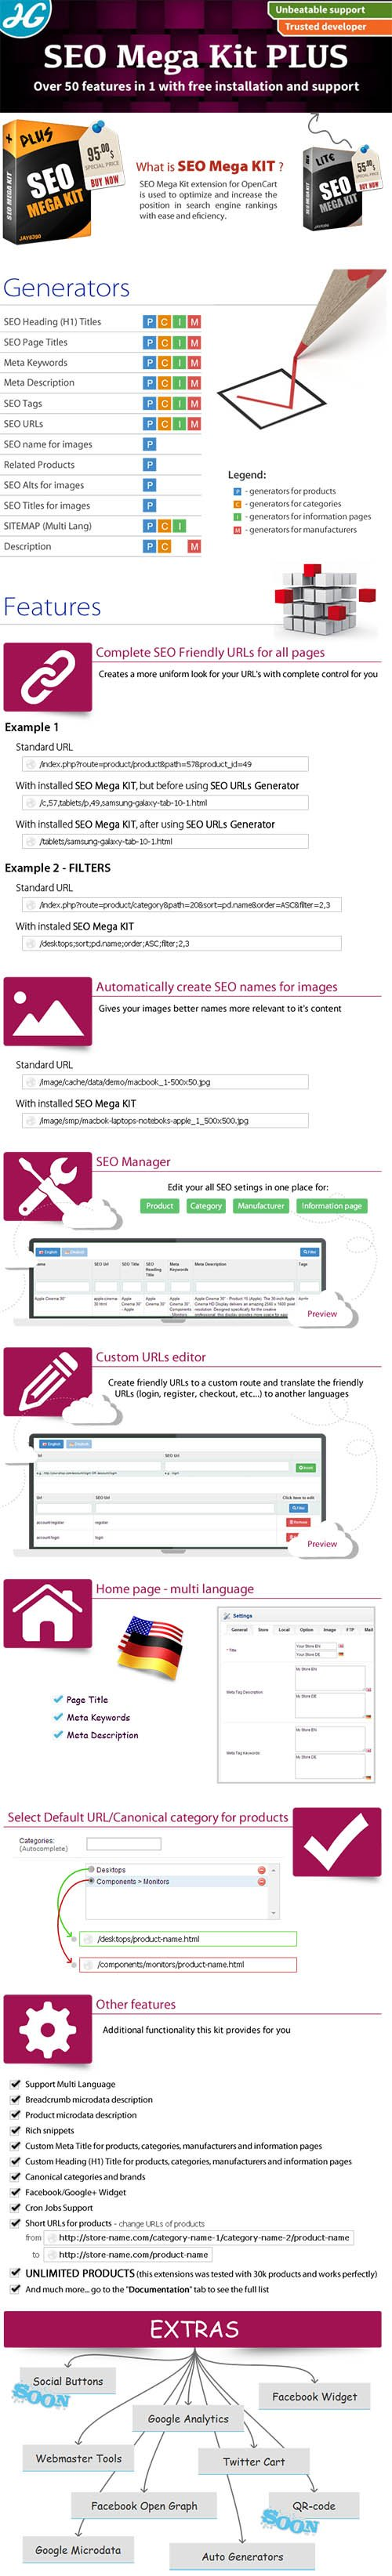 SEO Mega Kit PLUS v2.0.2.6.2 - Complete SEO Friendly URLs - OVER 50 IN 1!